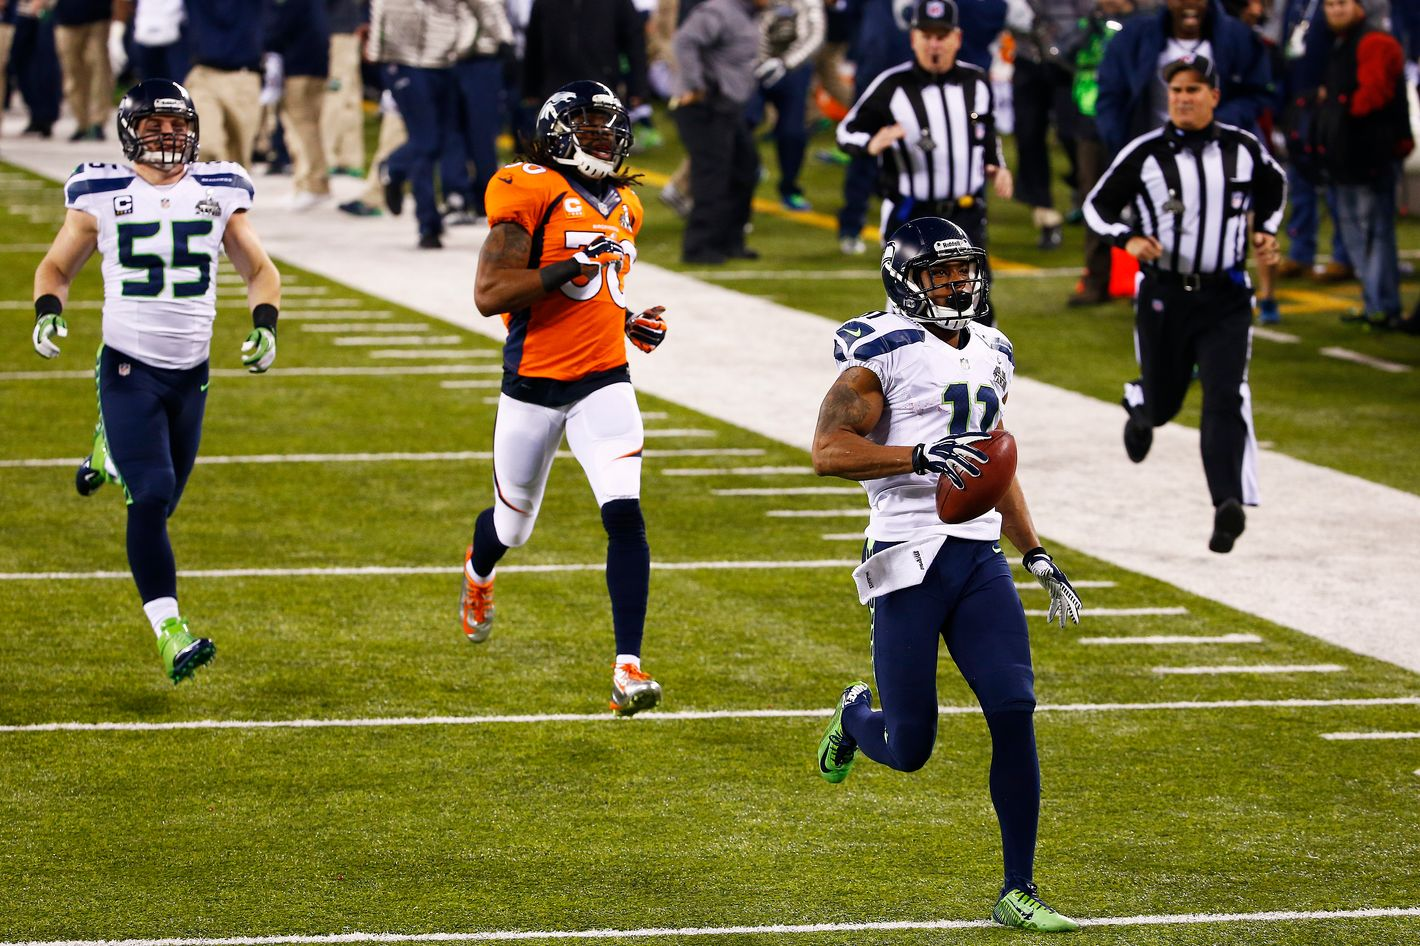 EAST RUTHERFORD, NJ - FEBRUARY 02:  Wide receiver Percy Harvin #11 of the Seattle Seahawks   returns the second half kickoff for 87 yards during the Pepsi Super Bowl XLVIII Halftime Show at MetLife Stadium against the Denver Broncos on February 2, 2014 in East Rutherford, New Jersey.  (Photo by Tom Pennington/Getty Images)